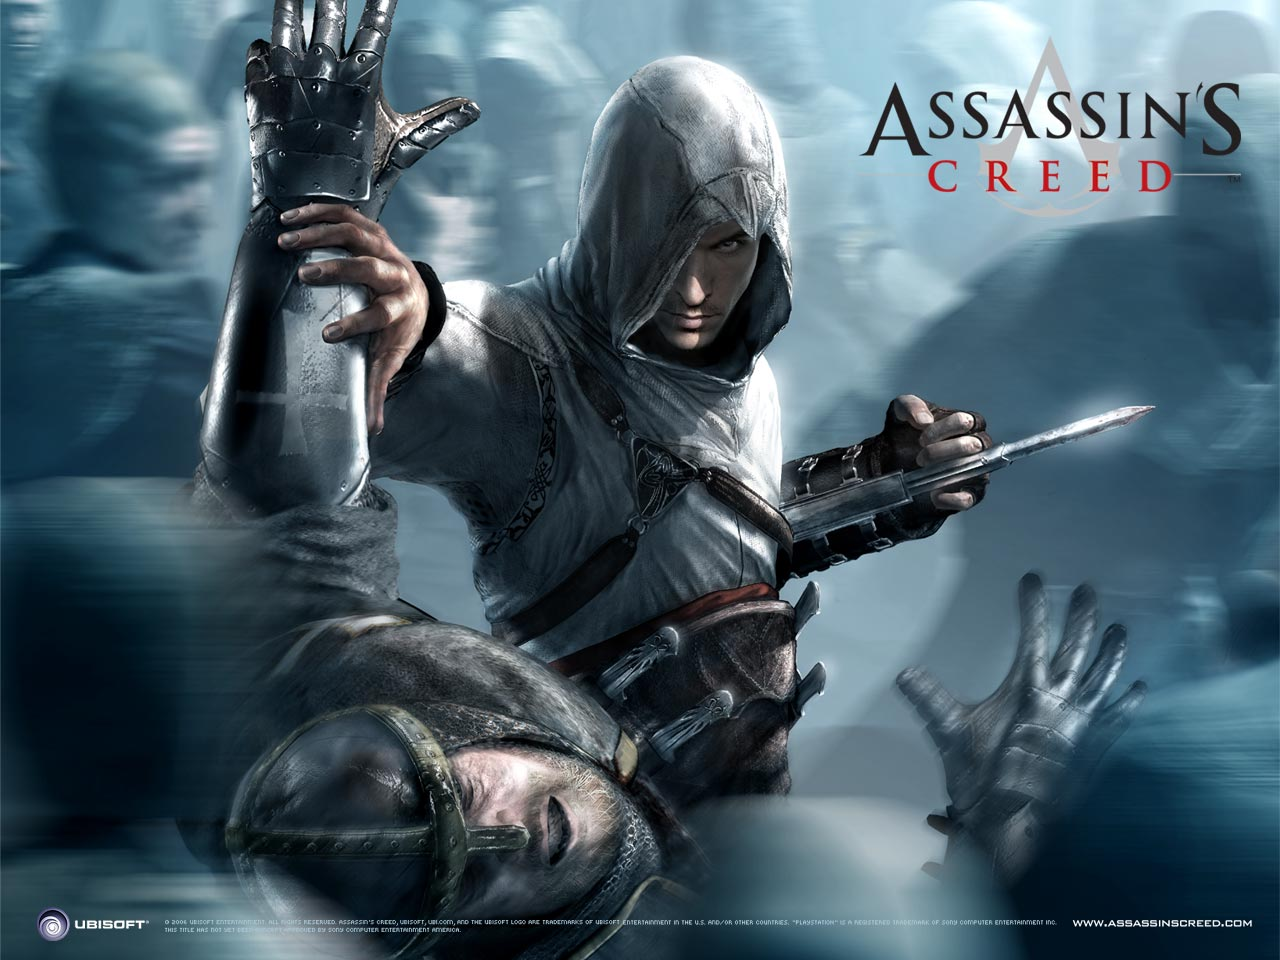 http://2.bp.blogspot.com/_R5-AN0rX9tE/TJ9ZcALOPSI/AAAAAAAAAFQ/FZ-77Sei3hU/s1600/assassins-creed-wallpaper-5.jpg